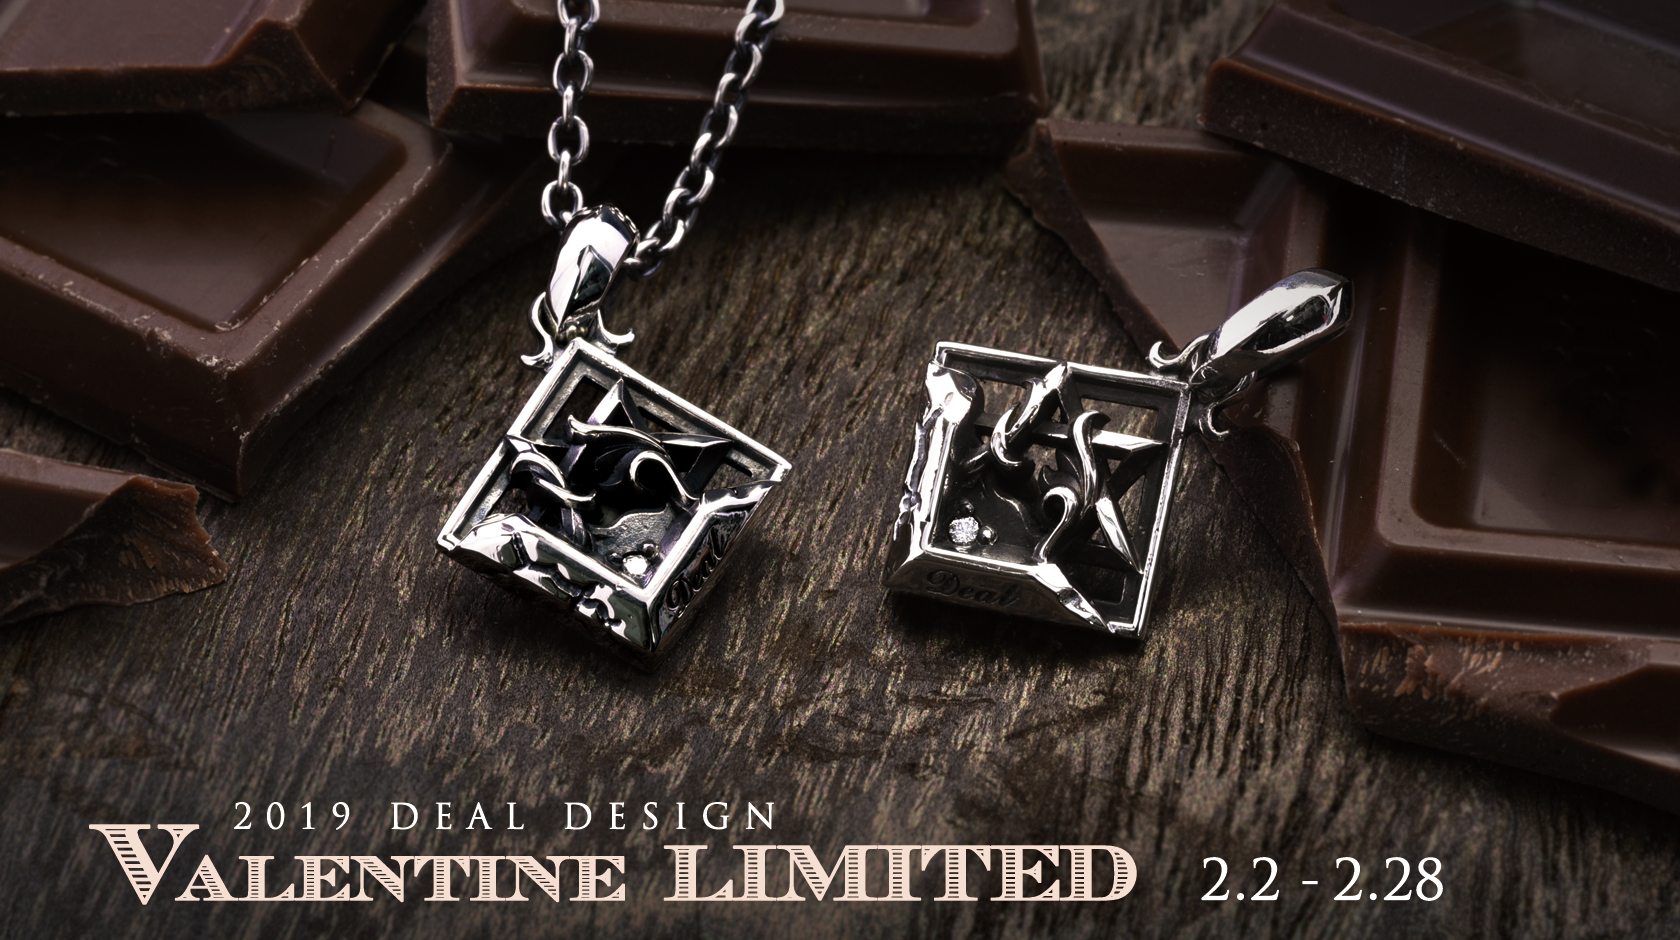 2019 Valentine LIMITED MODEL